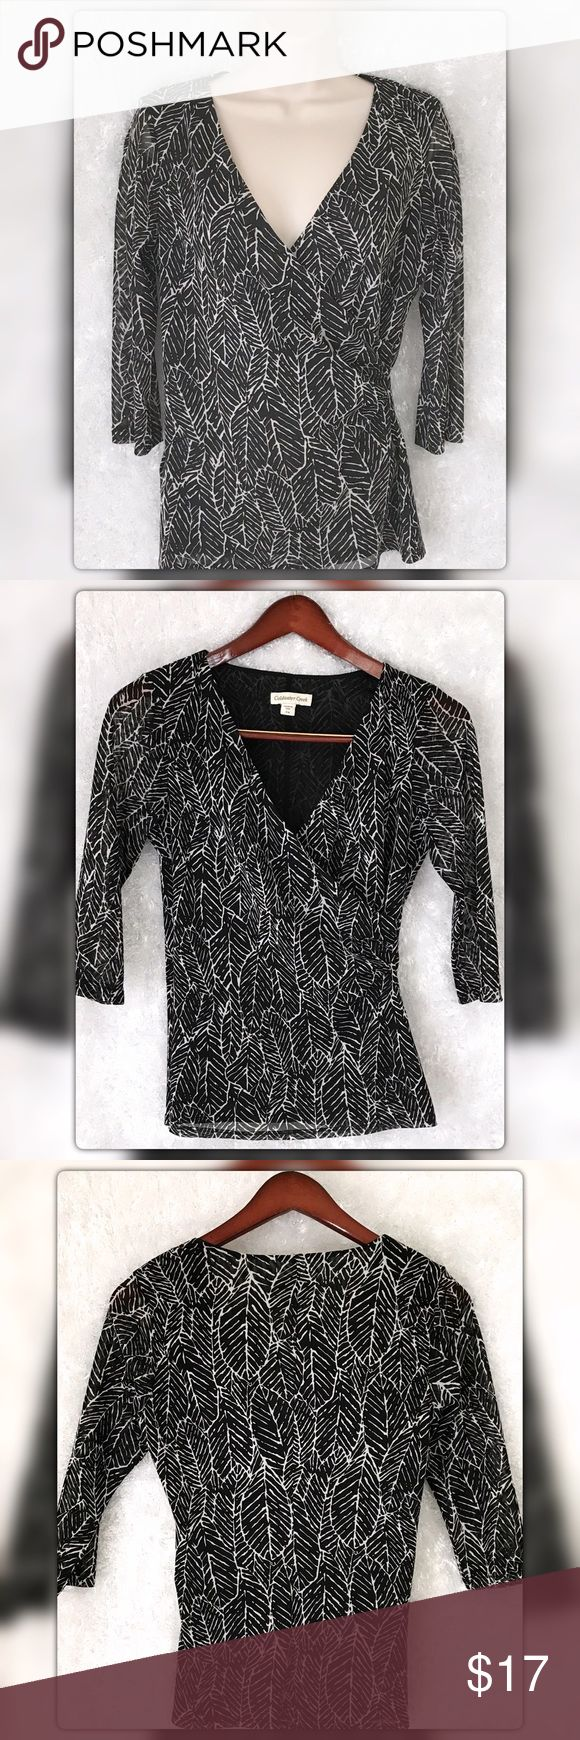 """Coldwater Creek S(8) Leaf Faux Wrap Knit Top Coldwater Creek S(8) Leaf Faux Wrap Knit Top. Polyester. Pit to pit measures 21"""" Length 25"""" Gently Used with no flaws. Thank you for checking out my listing. Stop by Flamingos Closet where something perfect is waiting for you 😍 Coldwater Creek Tops Blouses"""